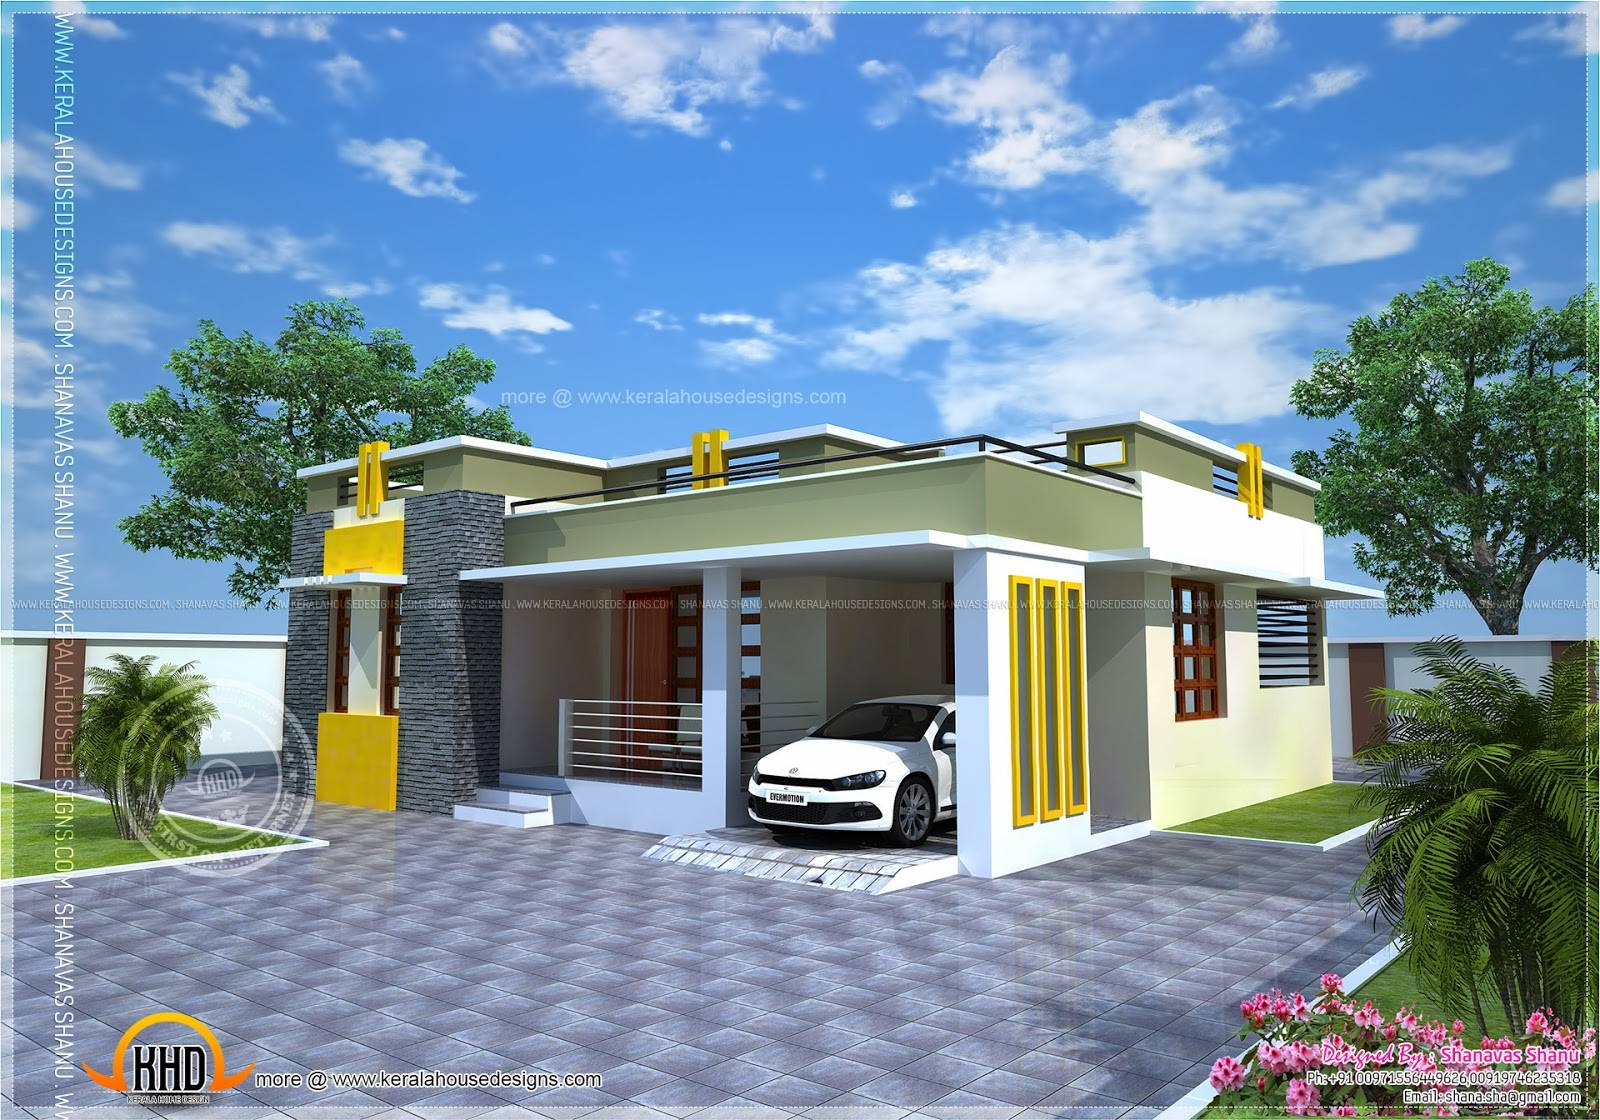 Picture of: House Plan Small Modern Villa Indian Plans House Plans 3729